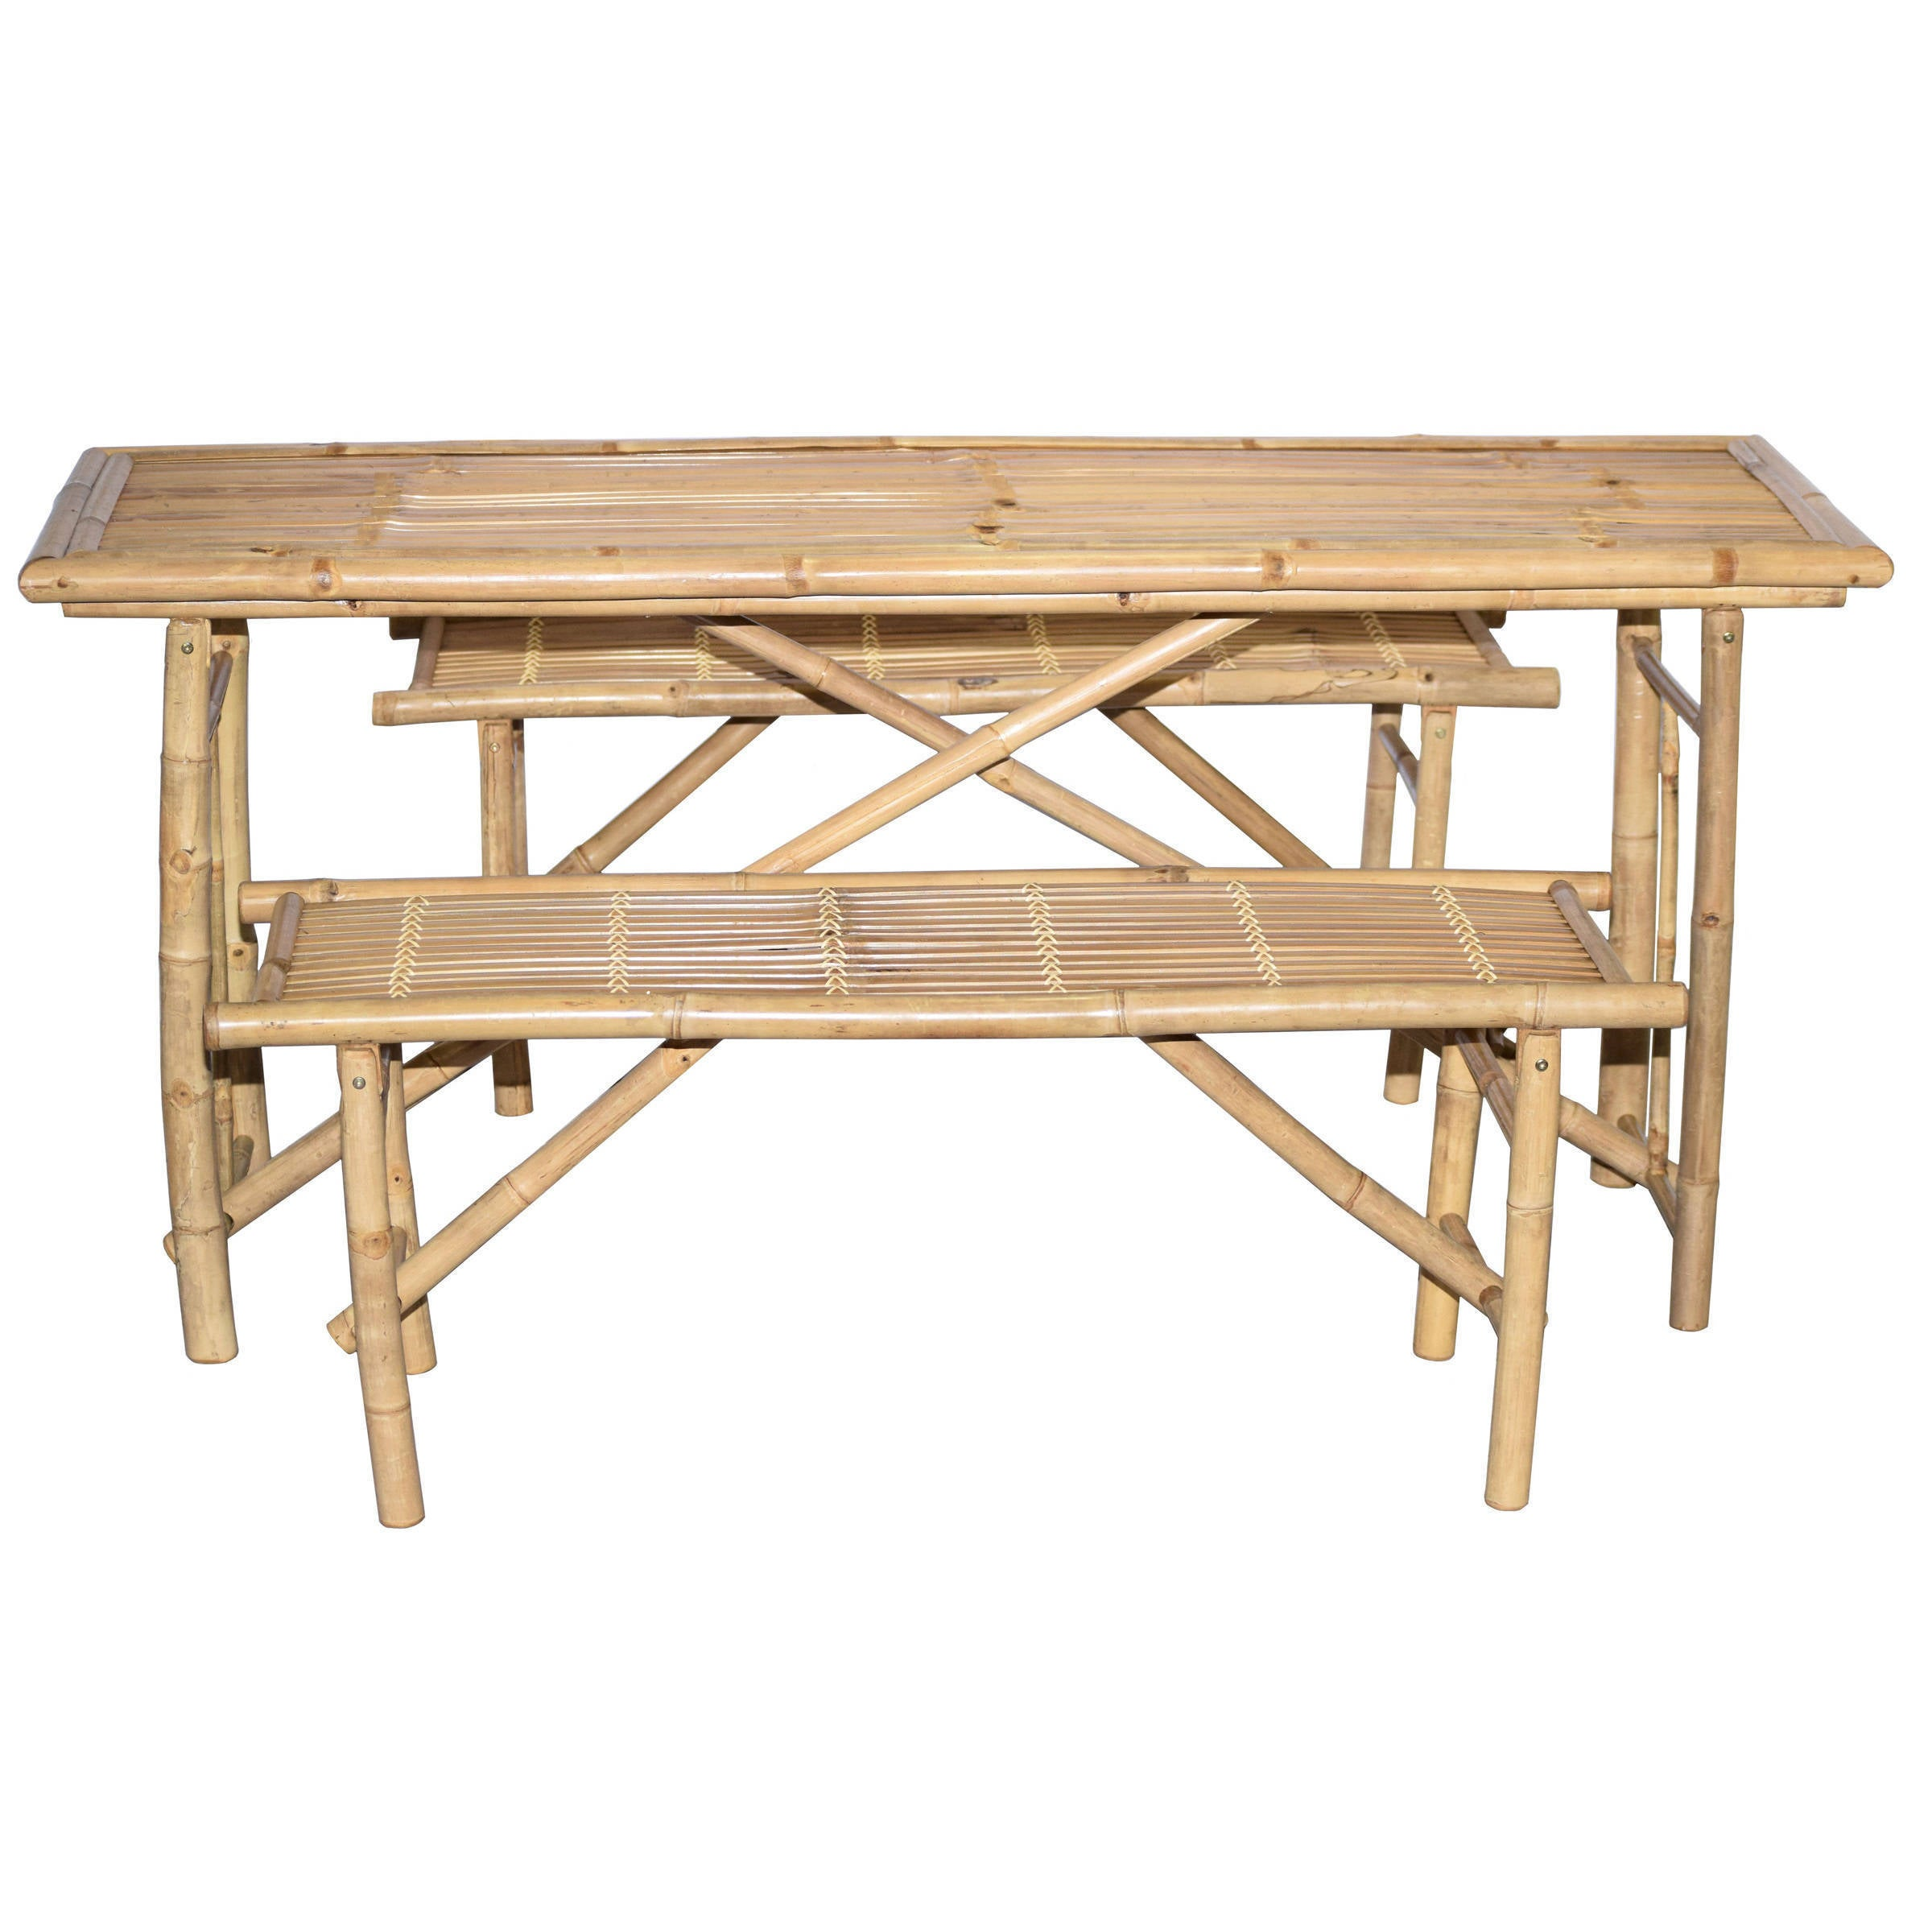 3 Piece Folding Picnic Table and Bench Set (Vietnam) - Free Shipping Today - Overstock - 19507970  sc 1 st  Overstock.com & 3 Piece Folding Picnic Table and Bench Set (Vietnam) - Free Shipping ...